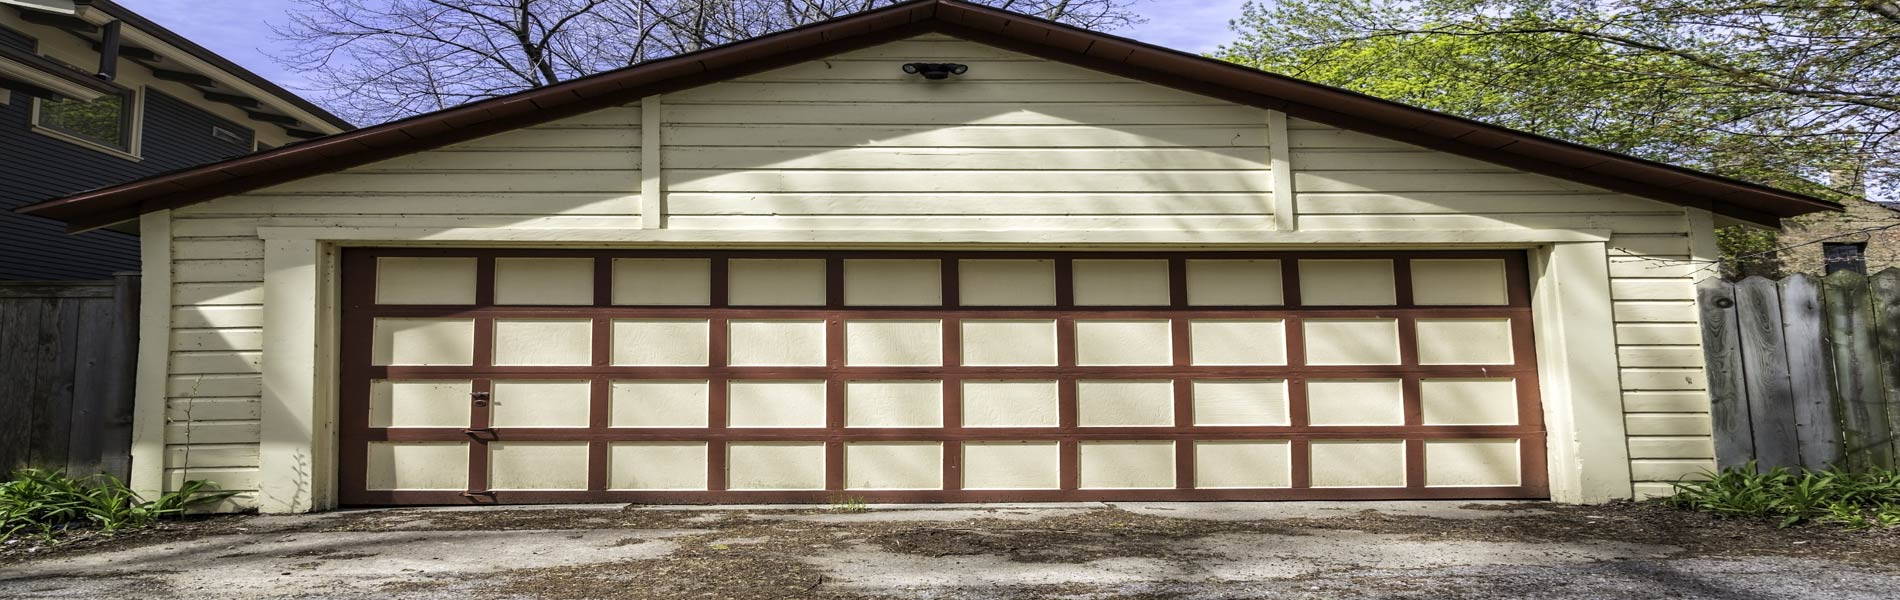 HighTech Garage Door Service, Weehawken, NJ 201-515-2702